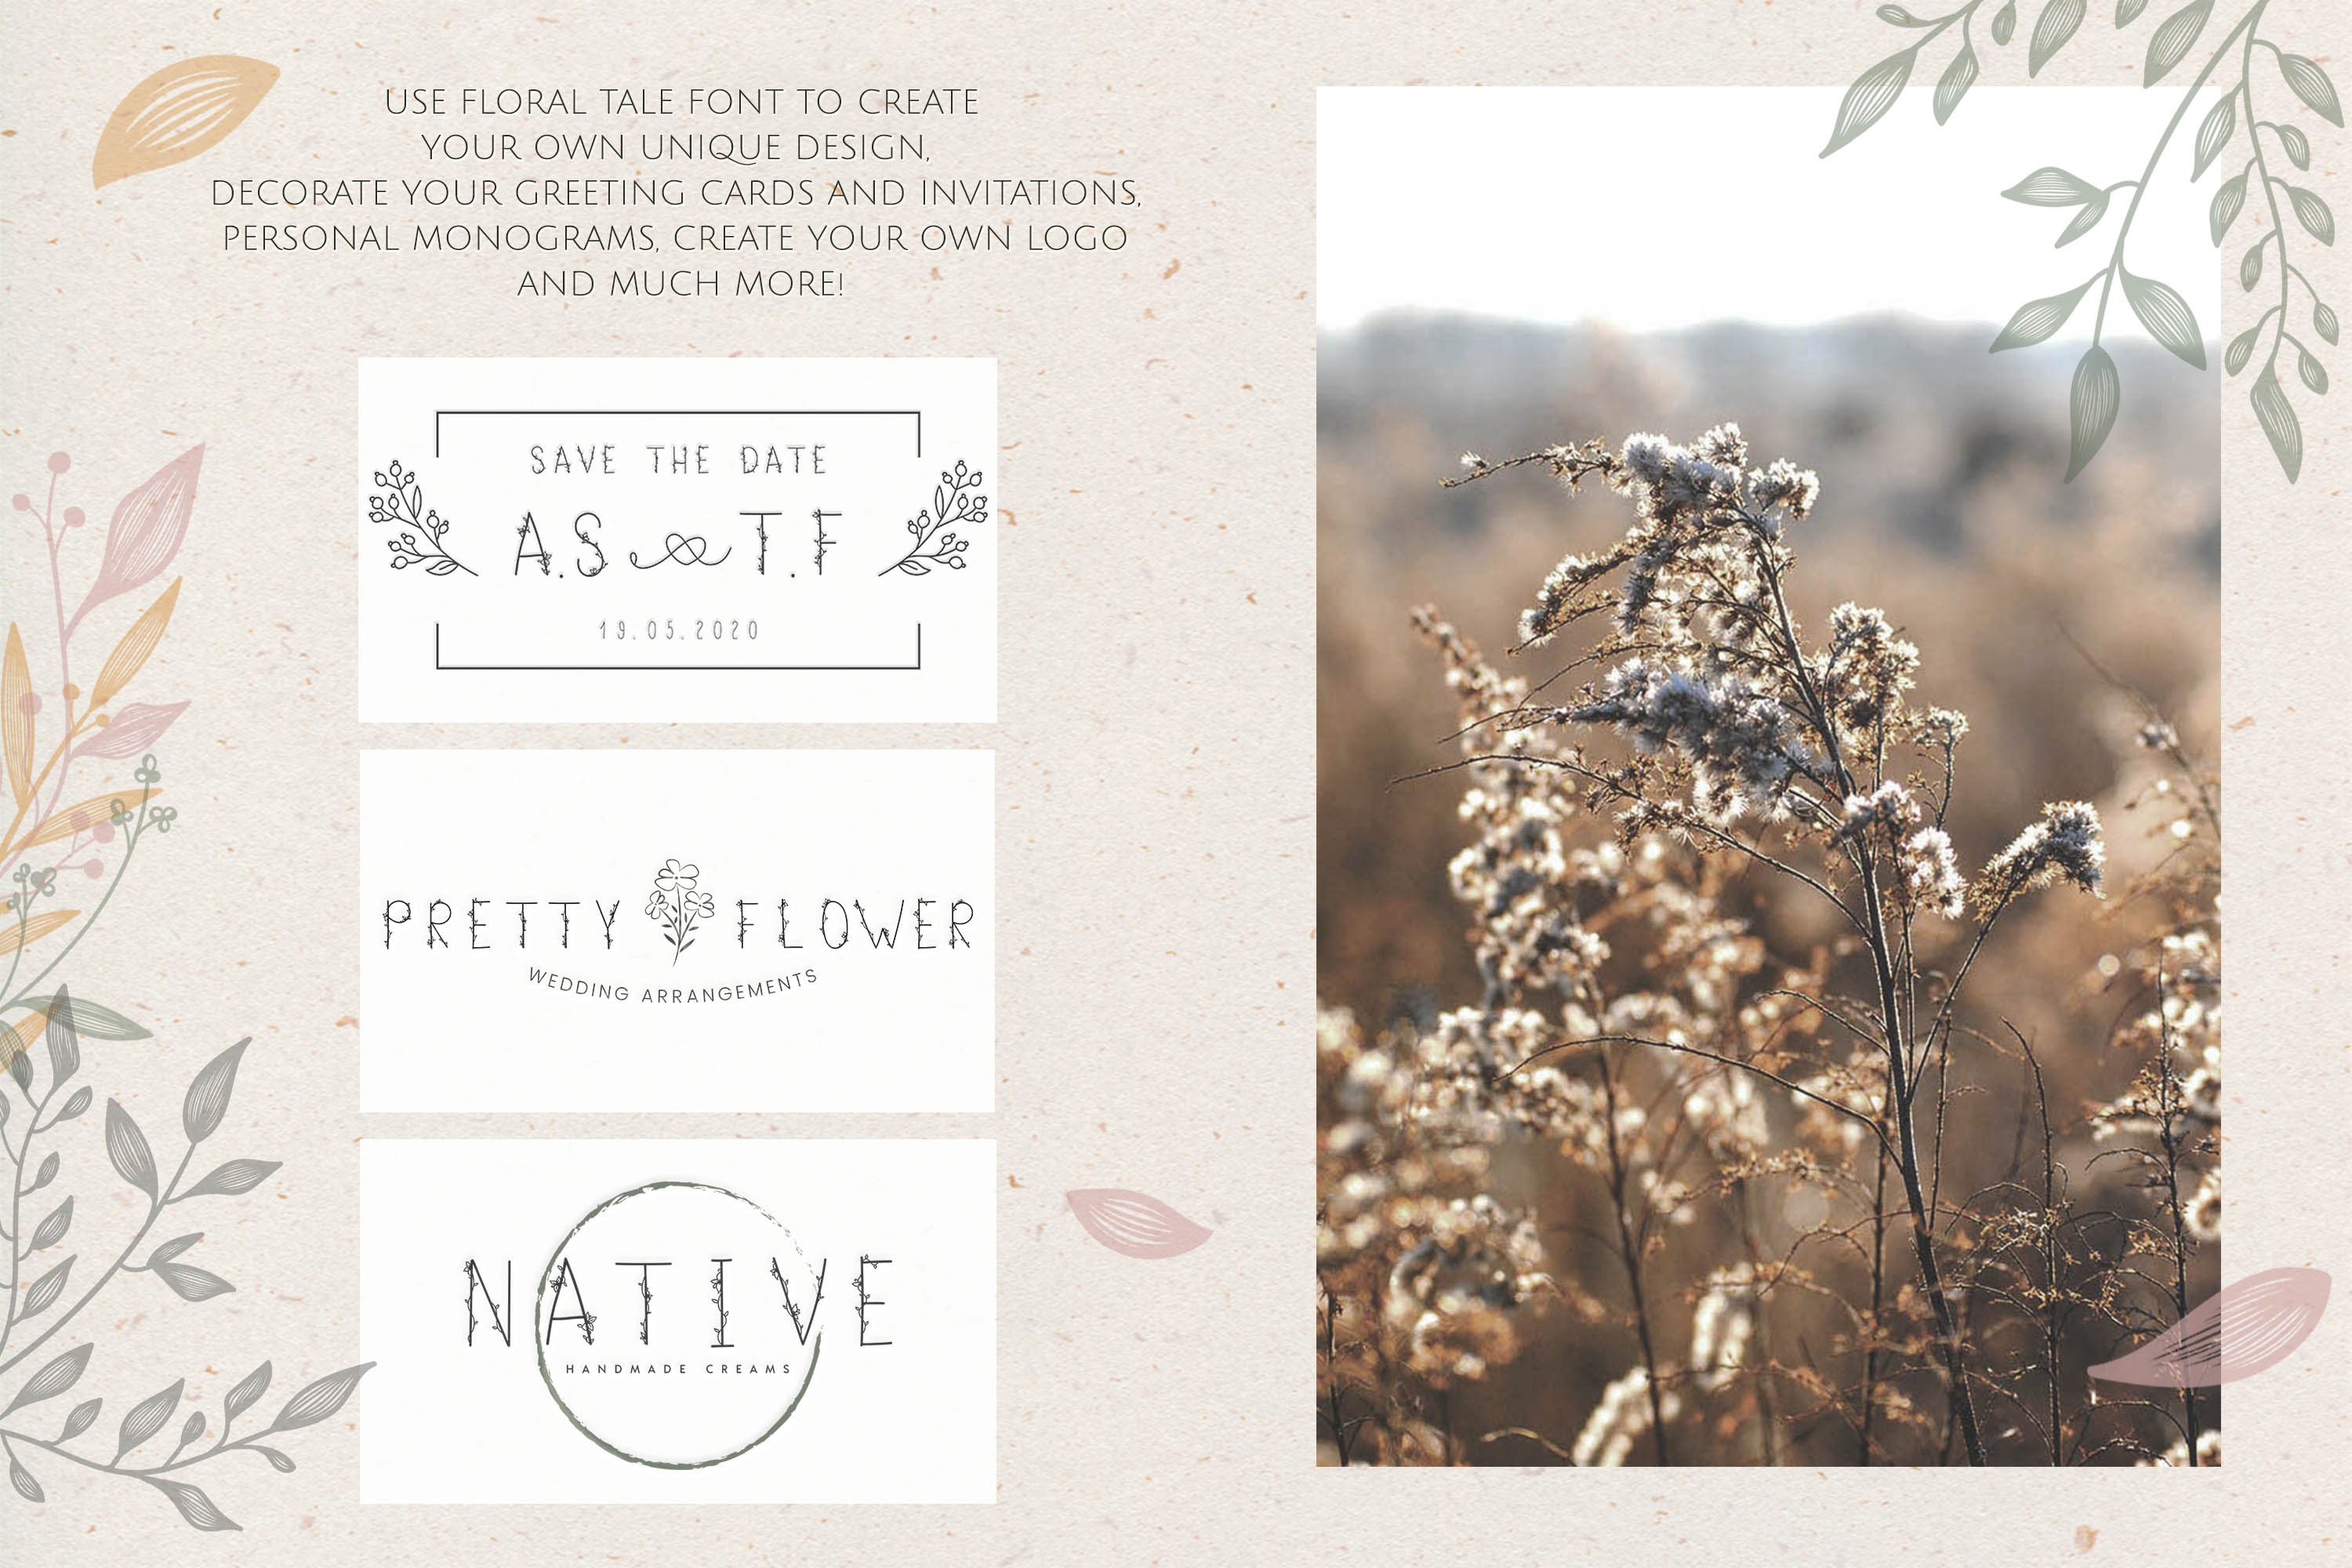 Flower Tale - Handwritten Floral Font example image 5